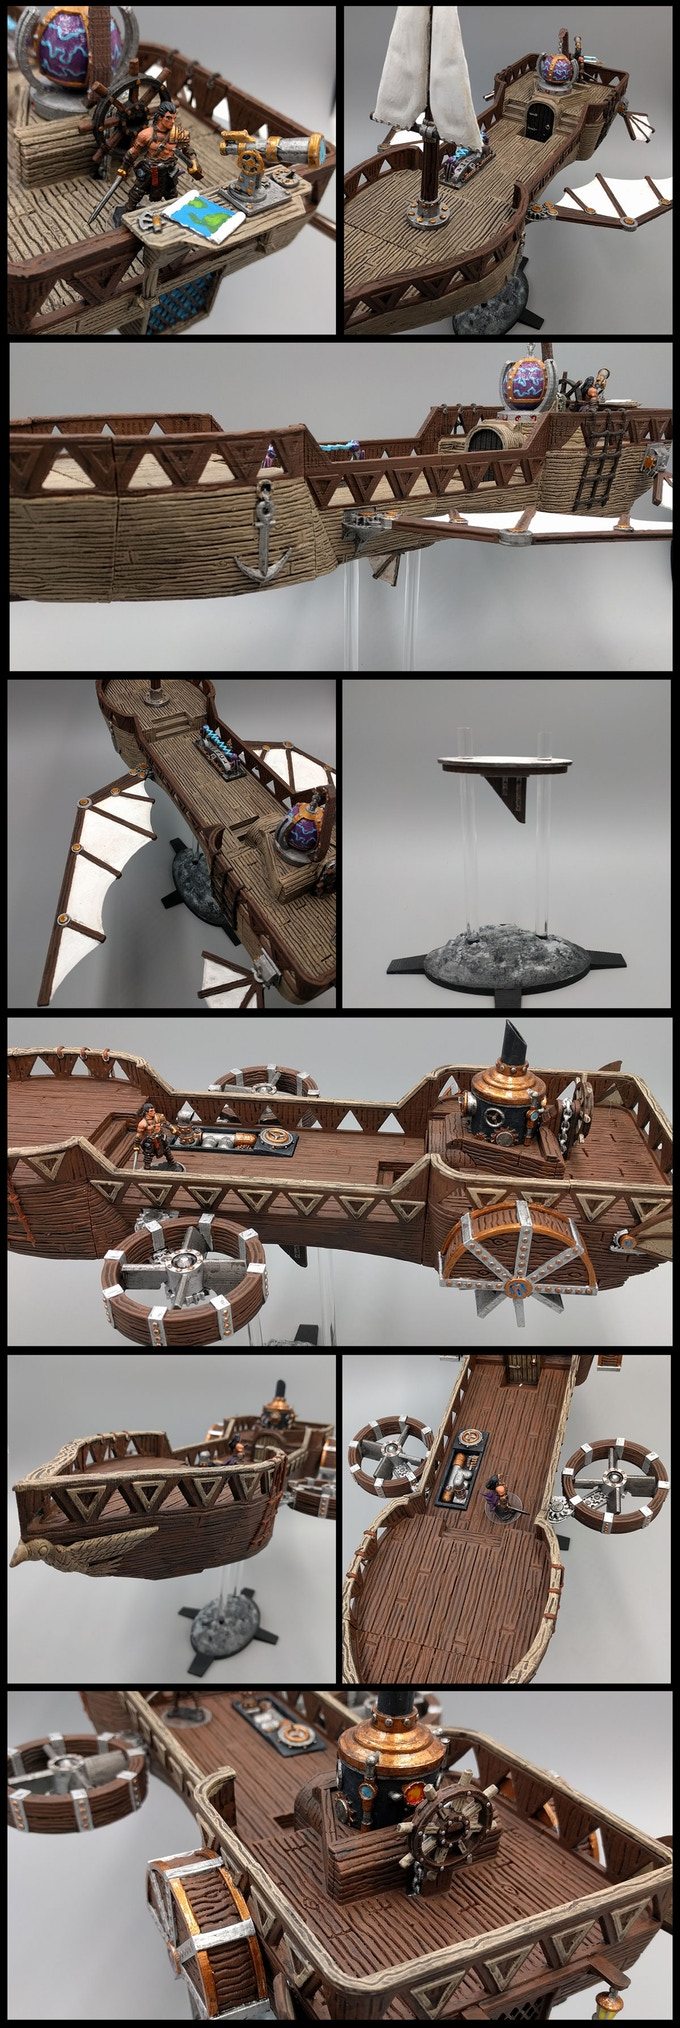 Modular Airships - I have worked to create what I hope are some of the most modular, dynamic, and beautifully designed airships to have graced tabletop gaming to date. You can customize and print your own unique airship for your players to explore your worlds, or assemble a diverse, powerful armada to rule the skies!